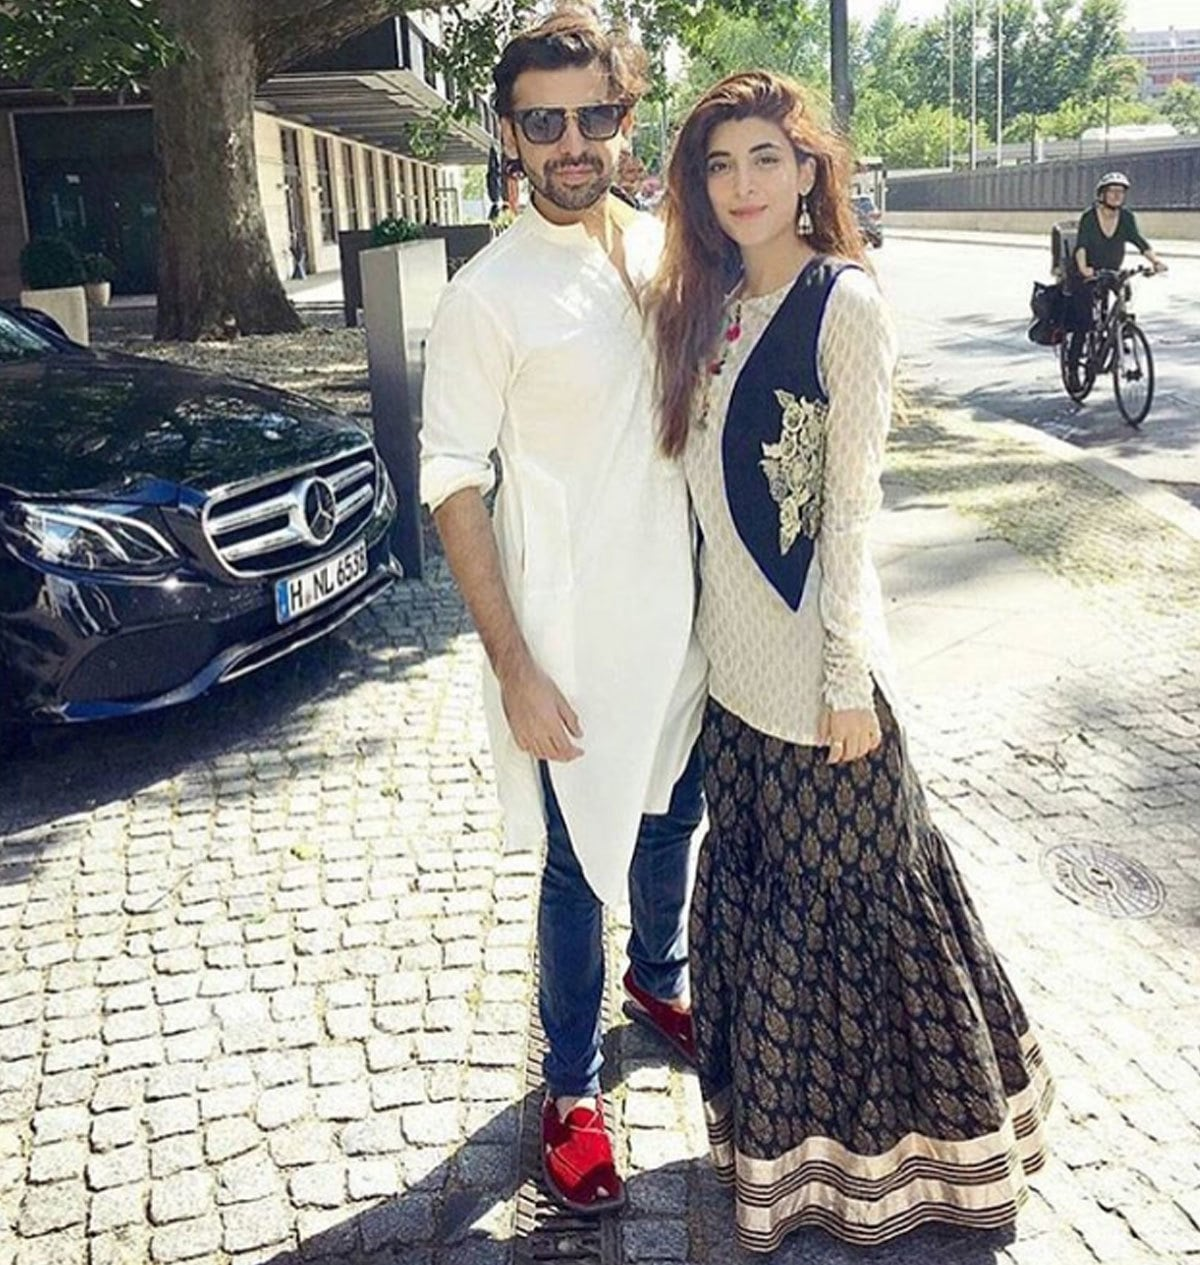 Farhan Saeed in his Eid kurta in Berlin. - Instagram